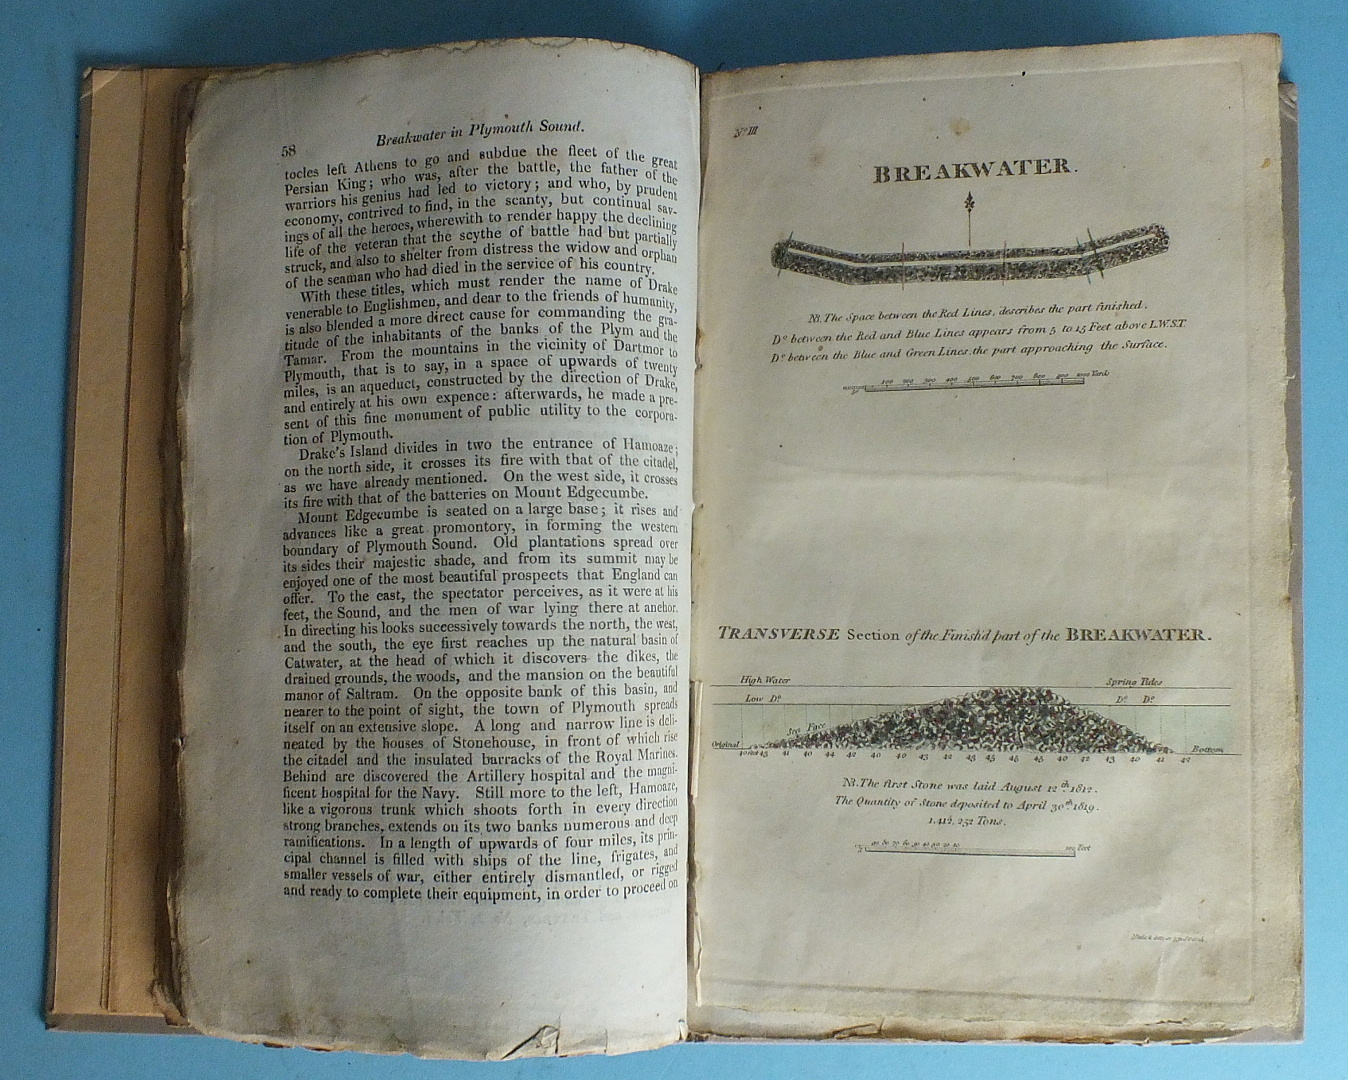 Lot 169 - Dupin (Charles), Narratives of two Excursions to the Parts of England, Scotland and Ireland in 1816,